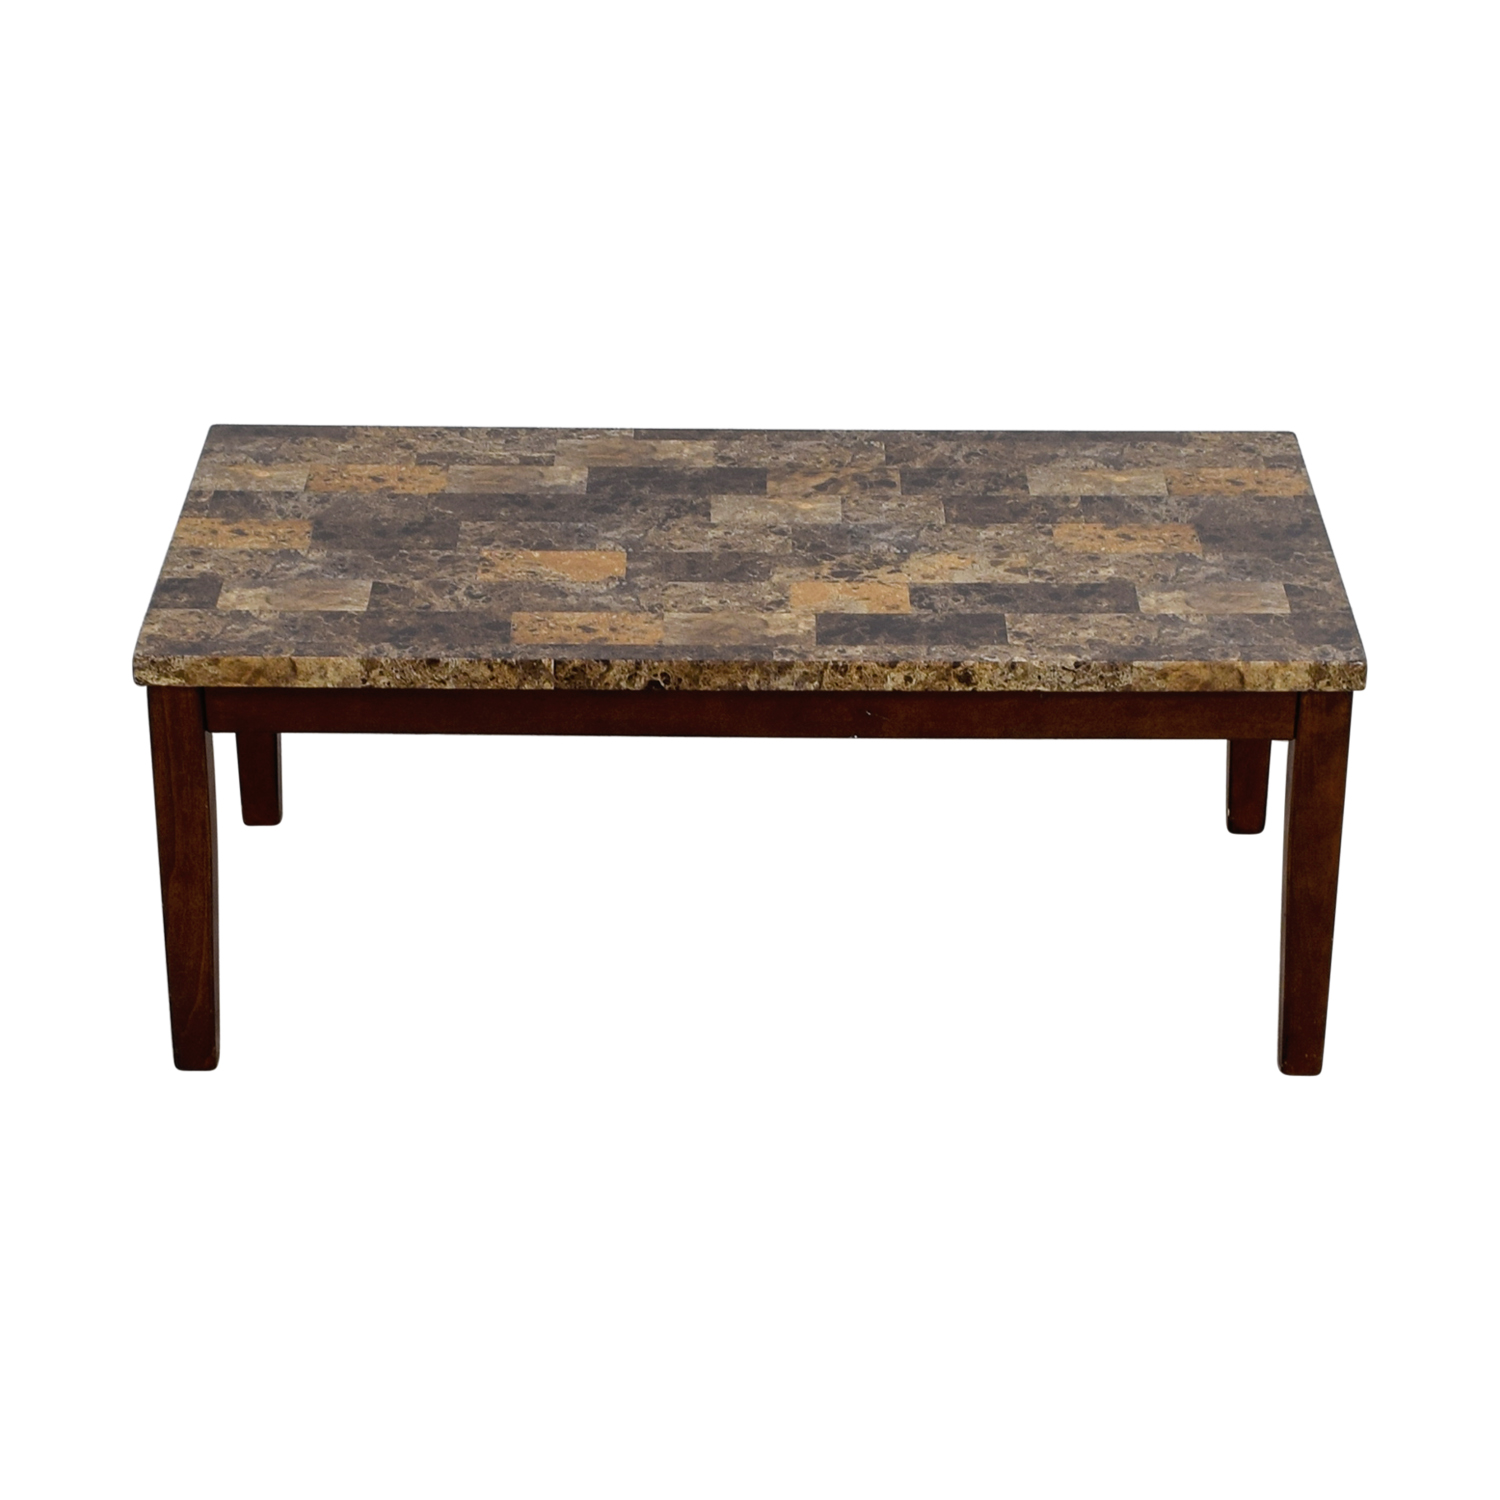 OFF Ashley Furniture Ashley Furniture Faux Marble Coffee Table - Rectangular cocktail table by ashley furniture